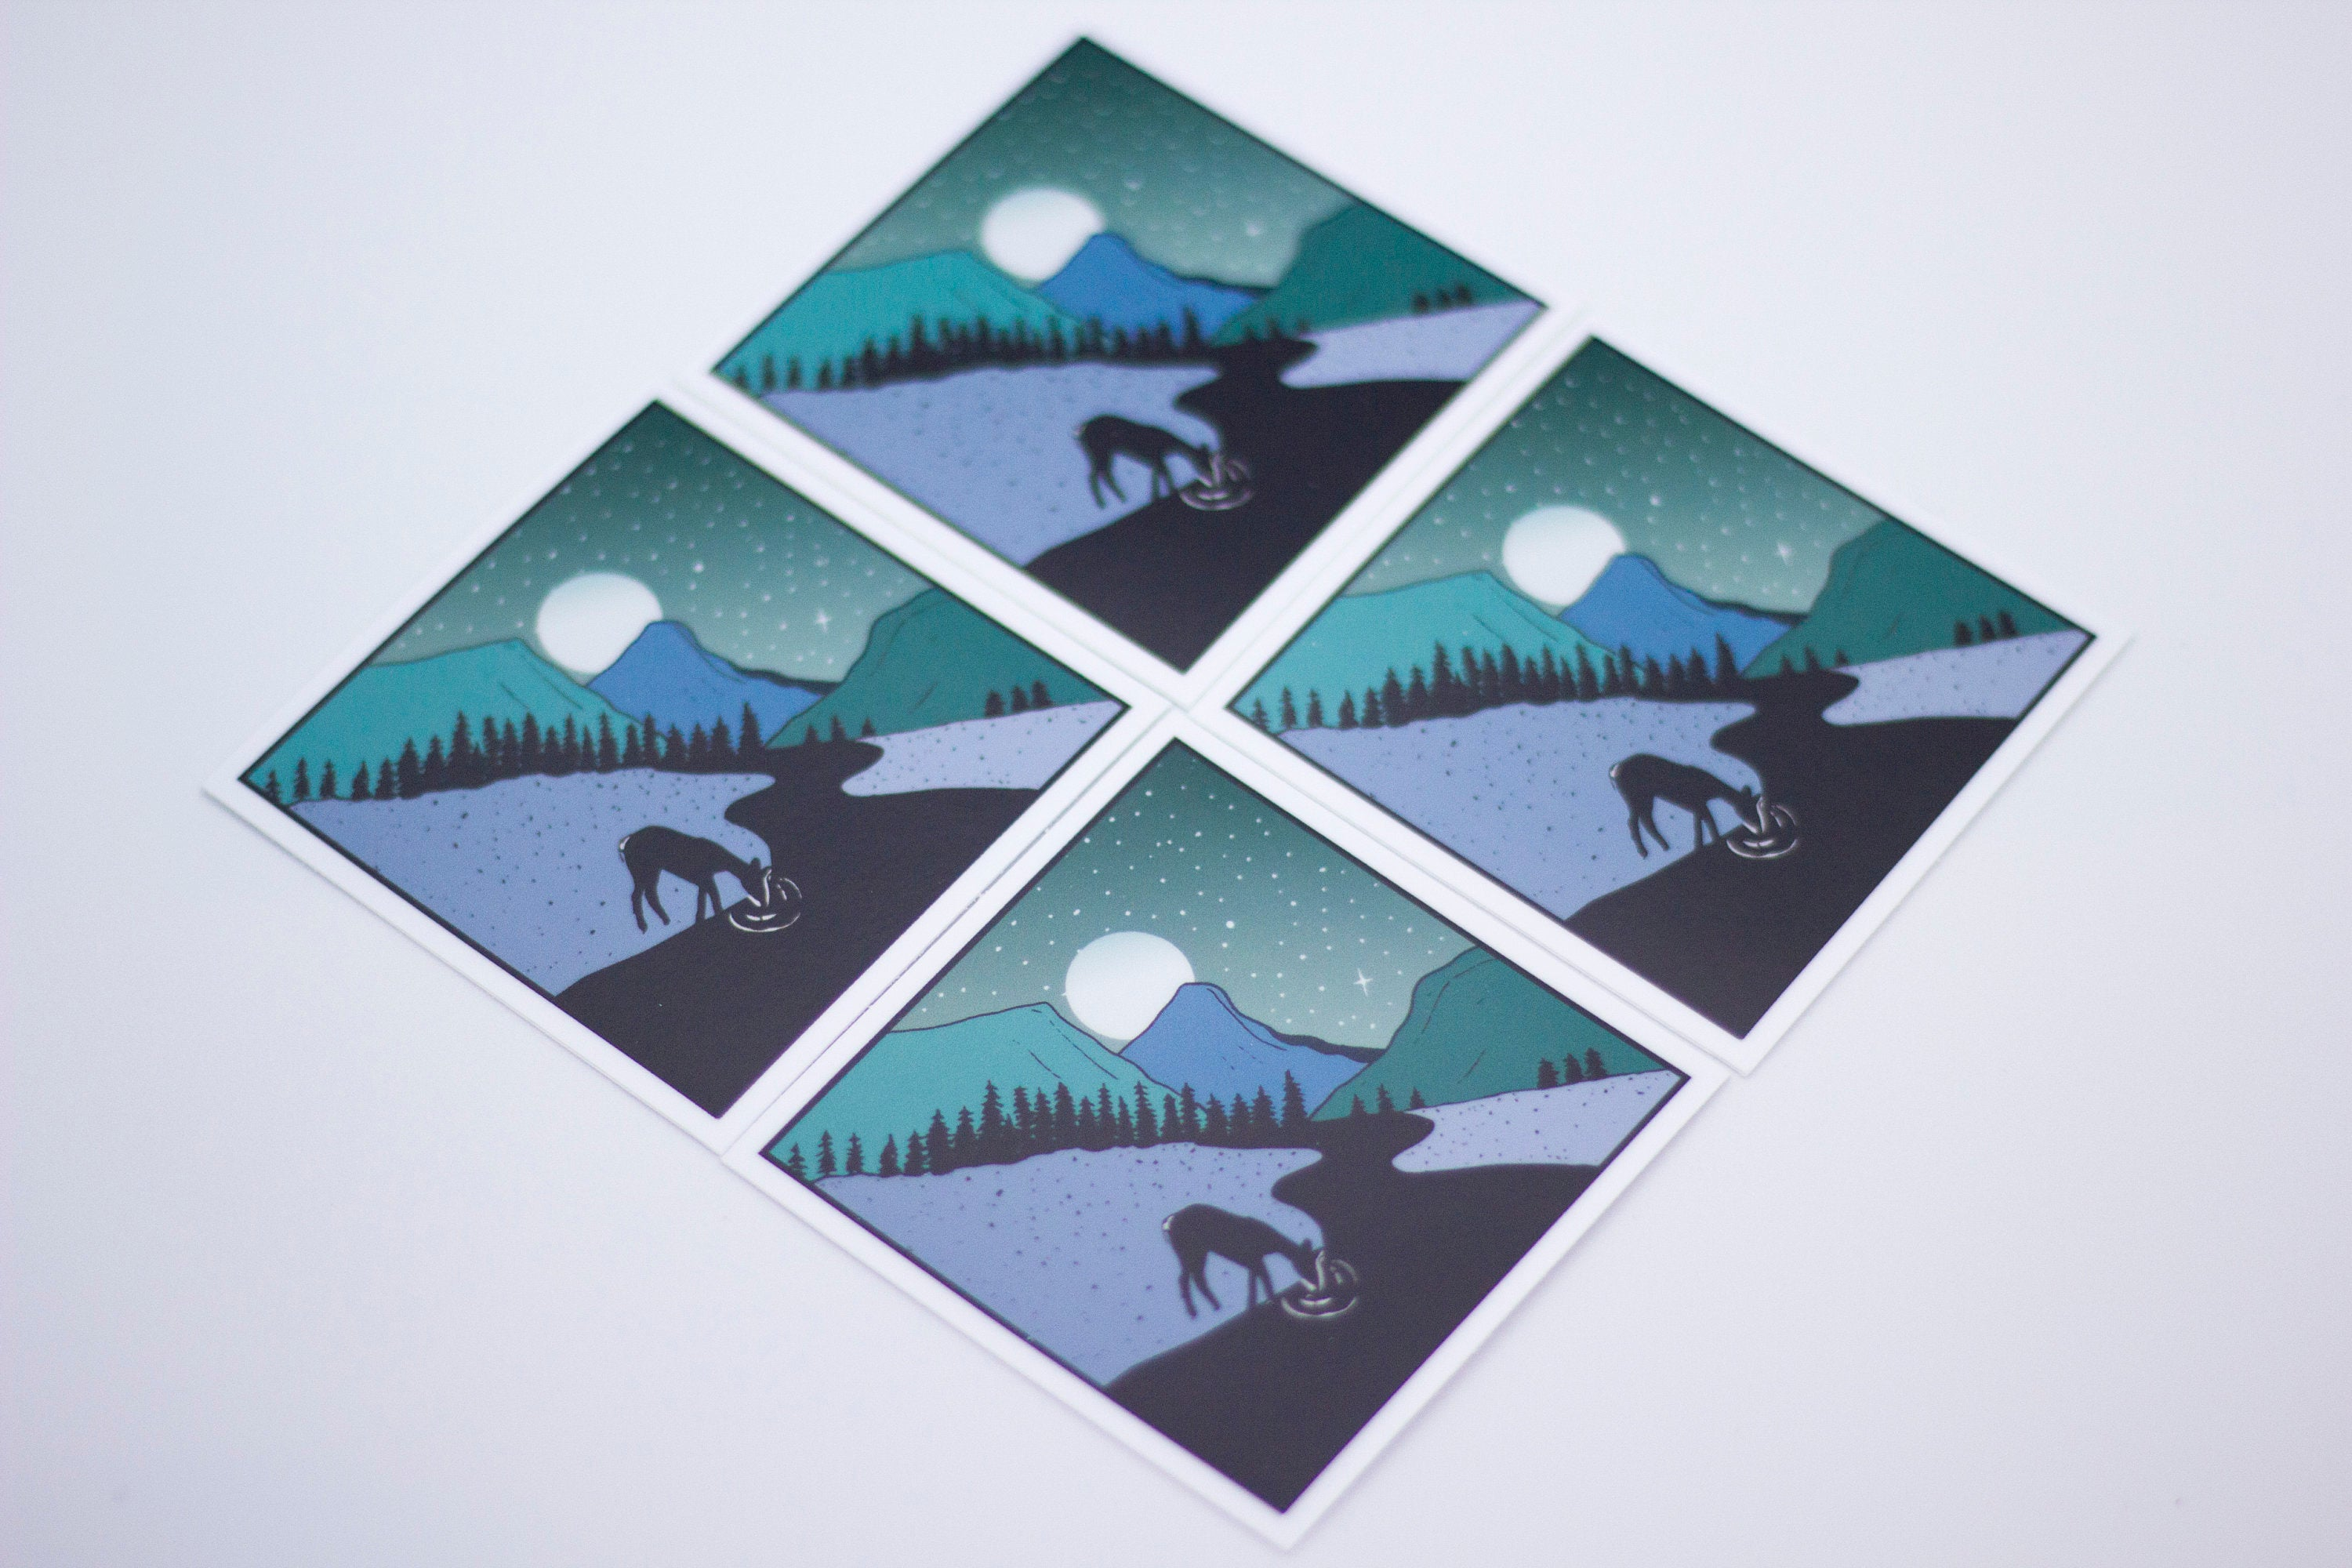 Diamond Deer Blues Sticker-Vinyl Sticker-Roam Wild Designs